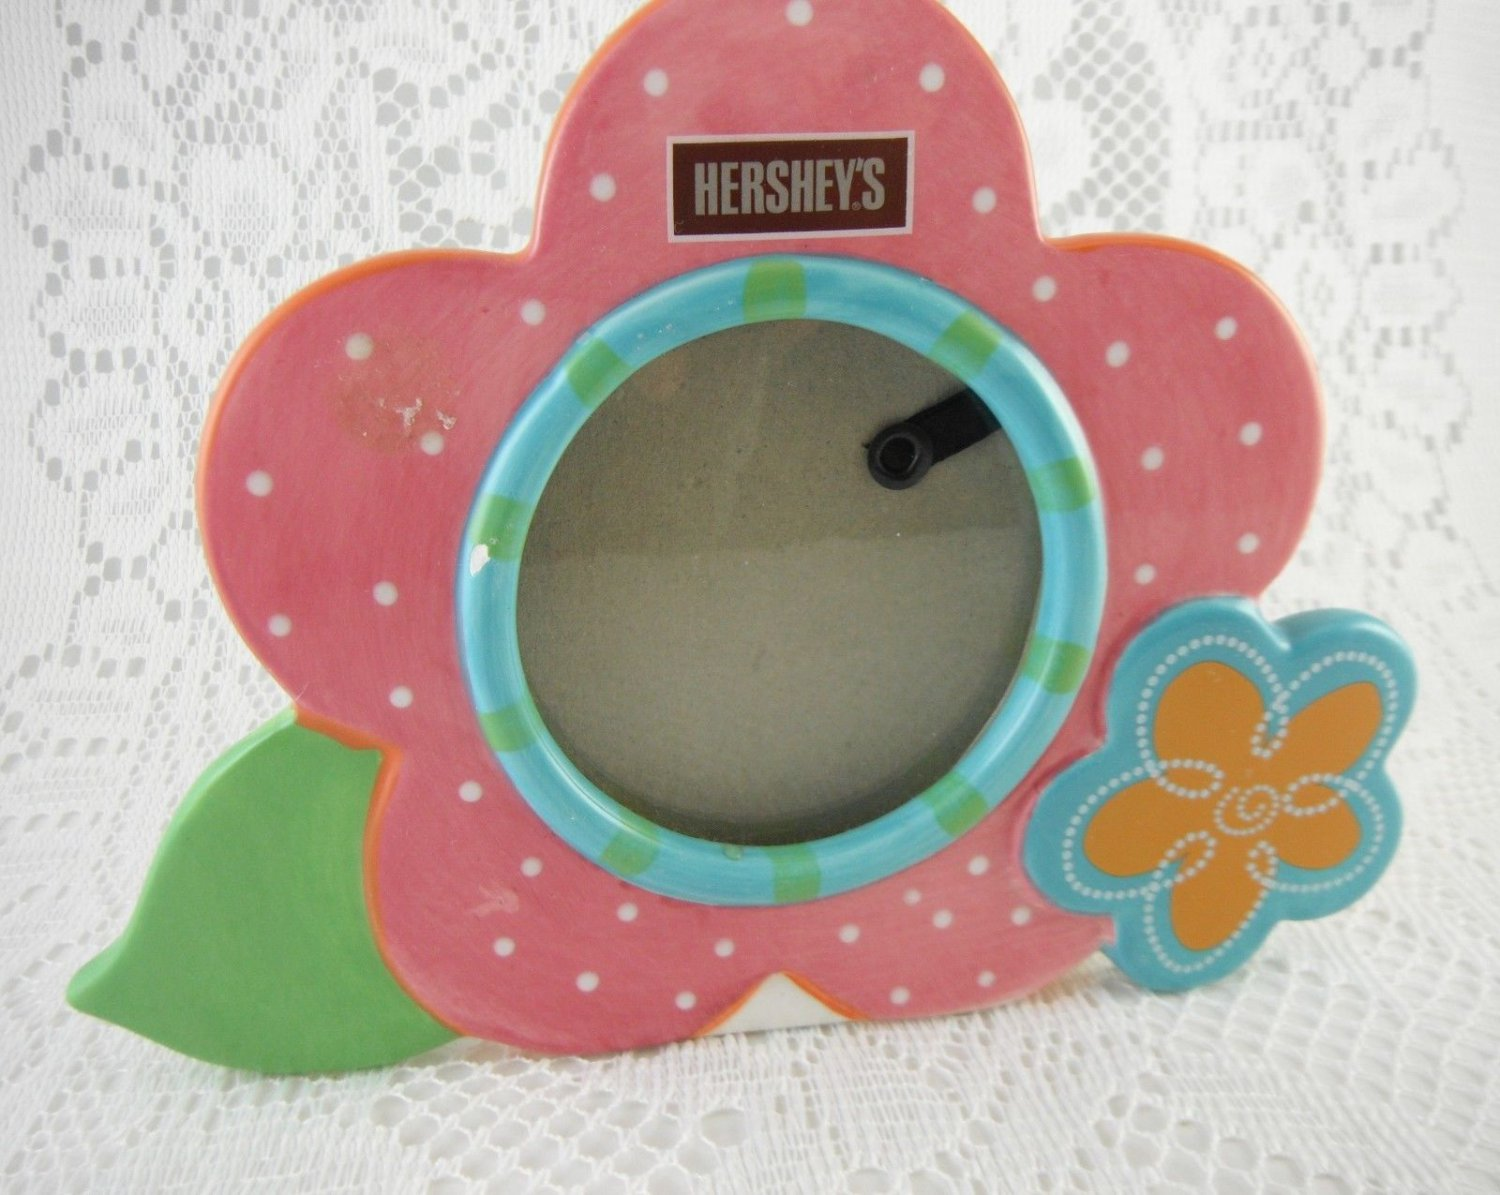 Hersey's Foods Houston Harvest Gift Products Picture Frame 3 x 3 inches tblru1